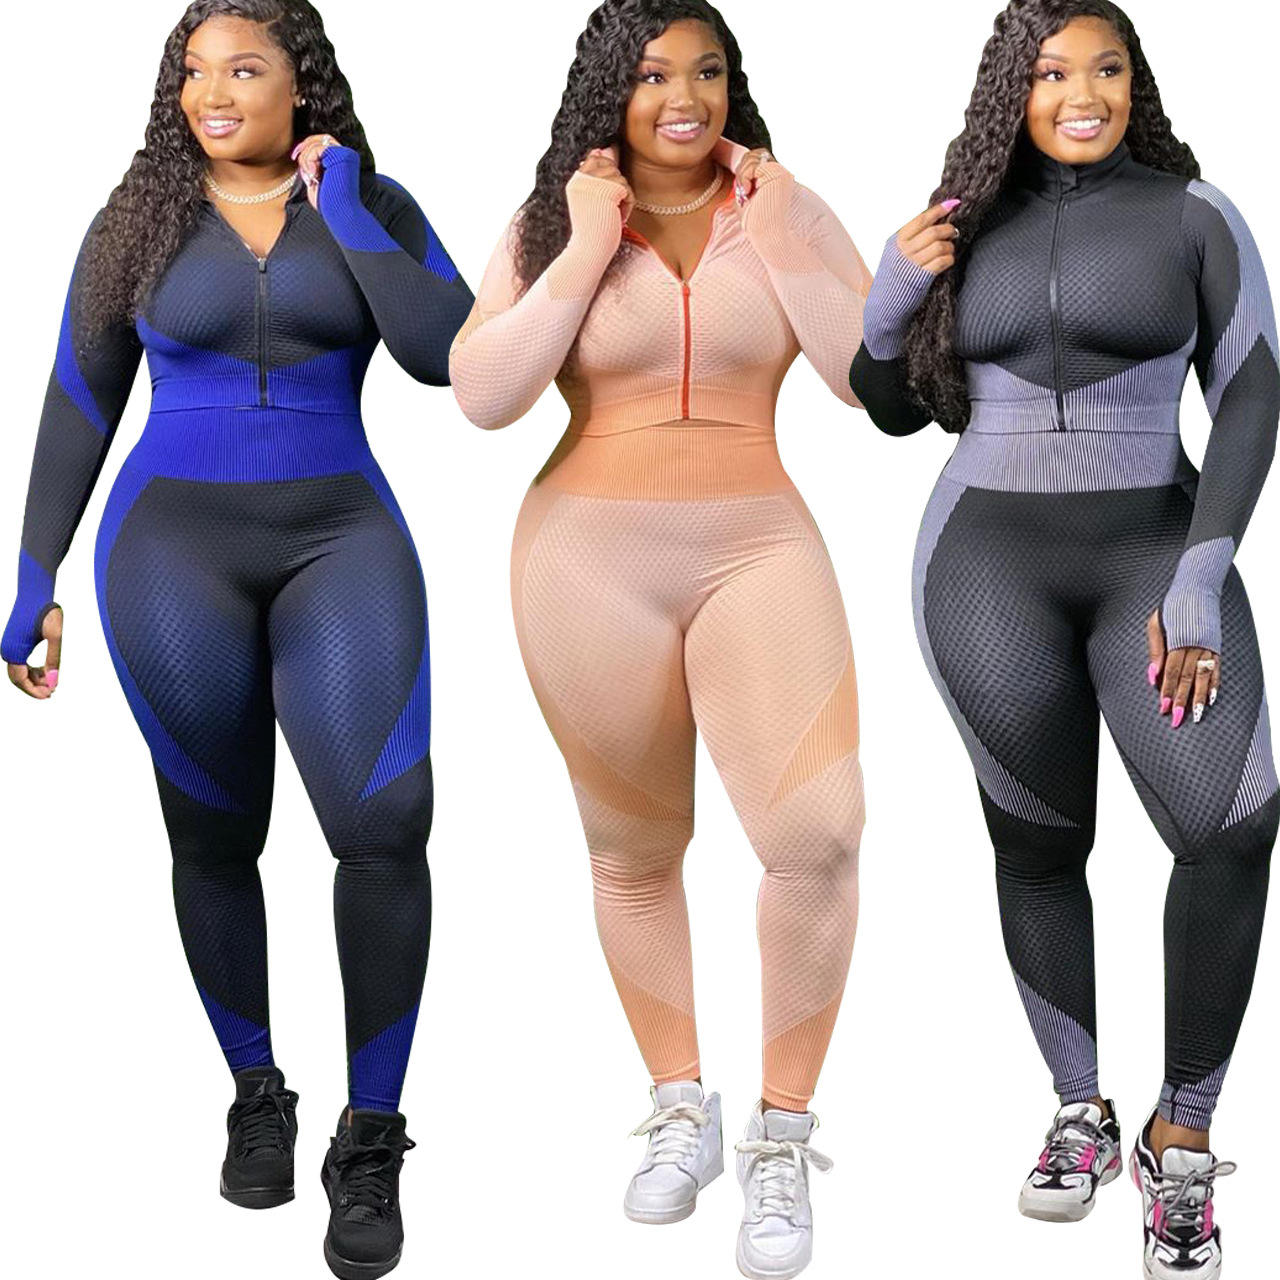 Plus Size Two Piece Women Yoga Set Striped Yoga Leggings 4XL Zipper Long Sleeve Gym Sport Active Wear